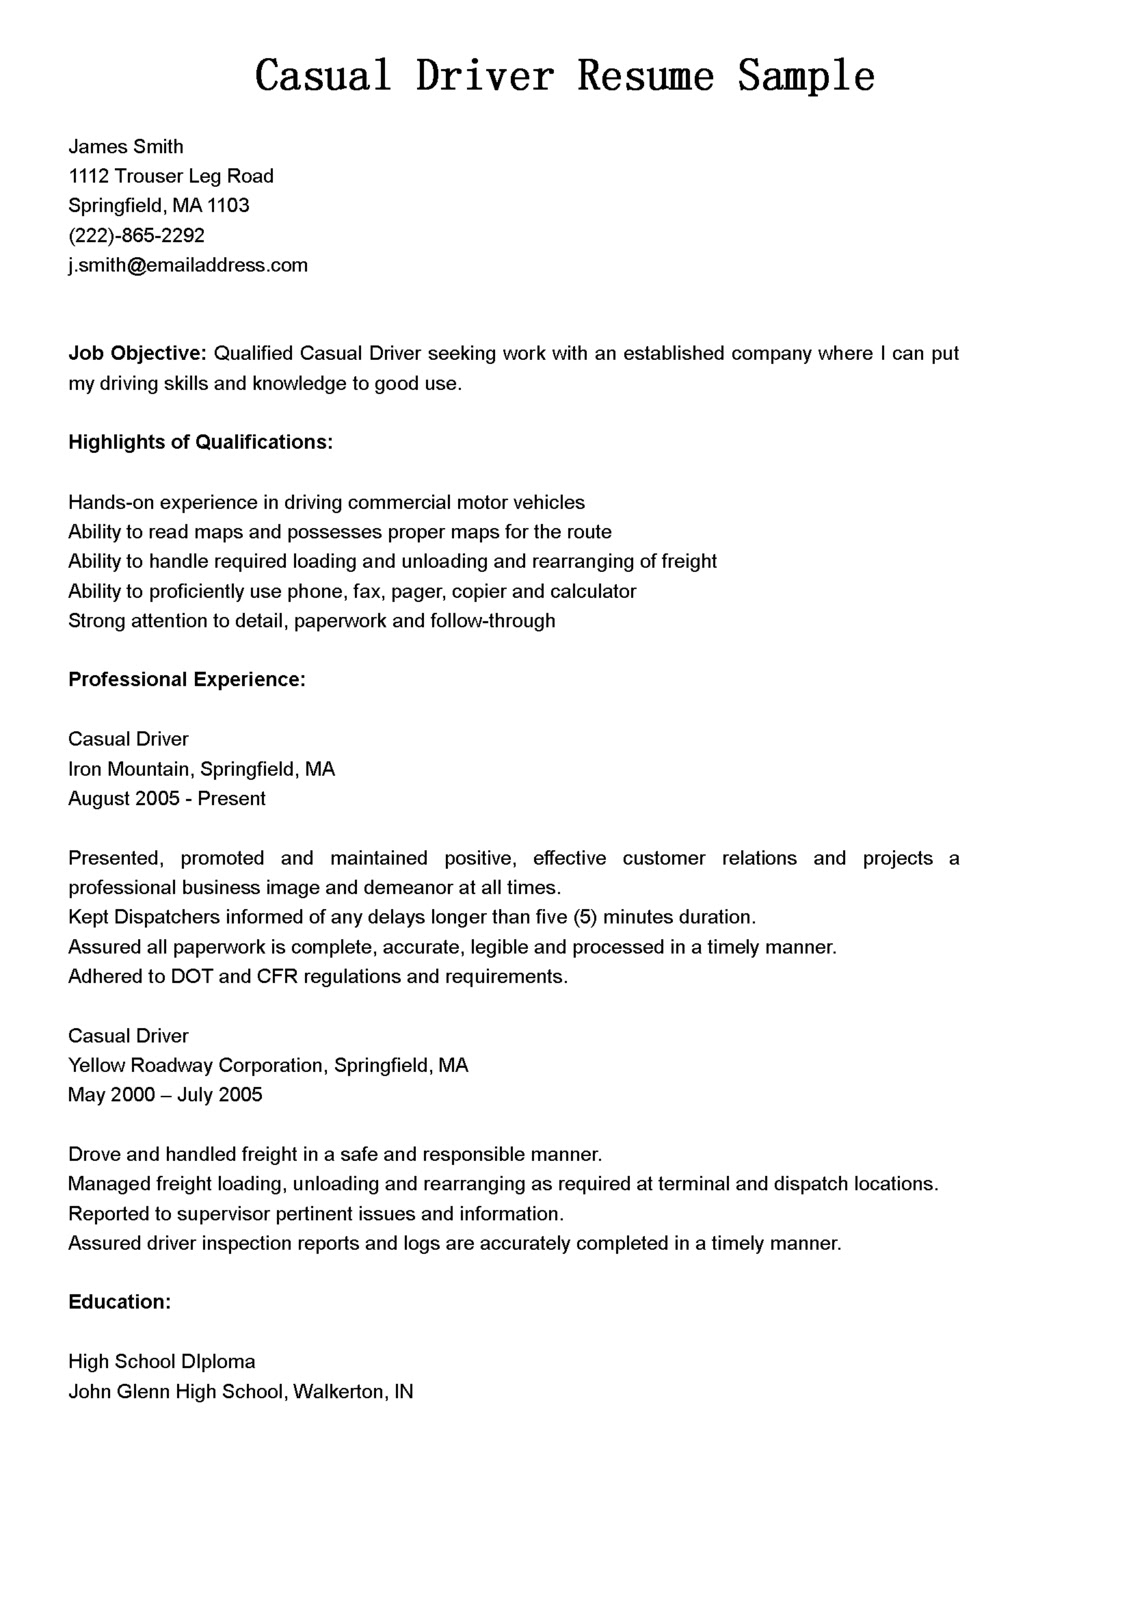 sample resume for cdl class b driver